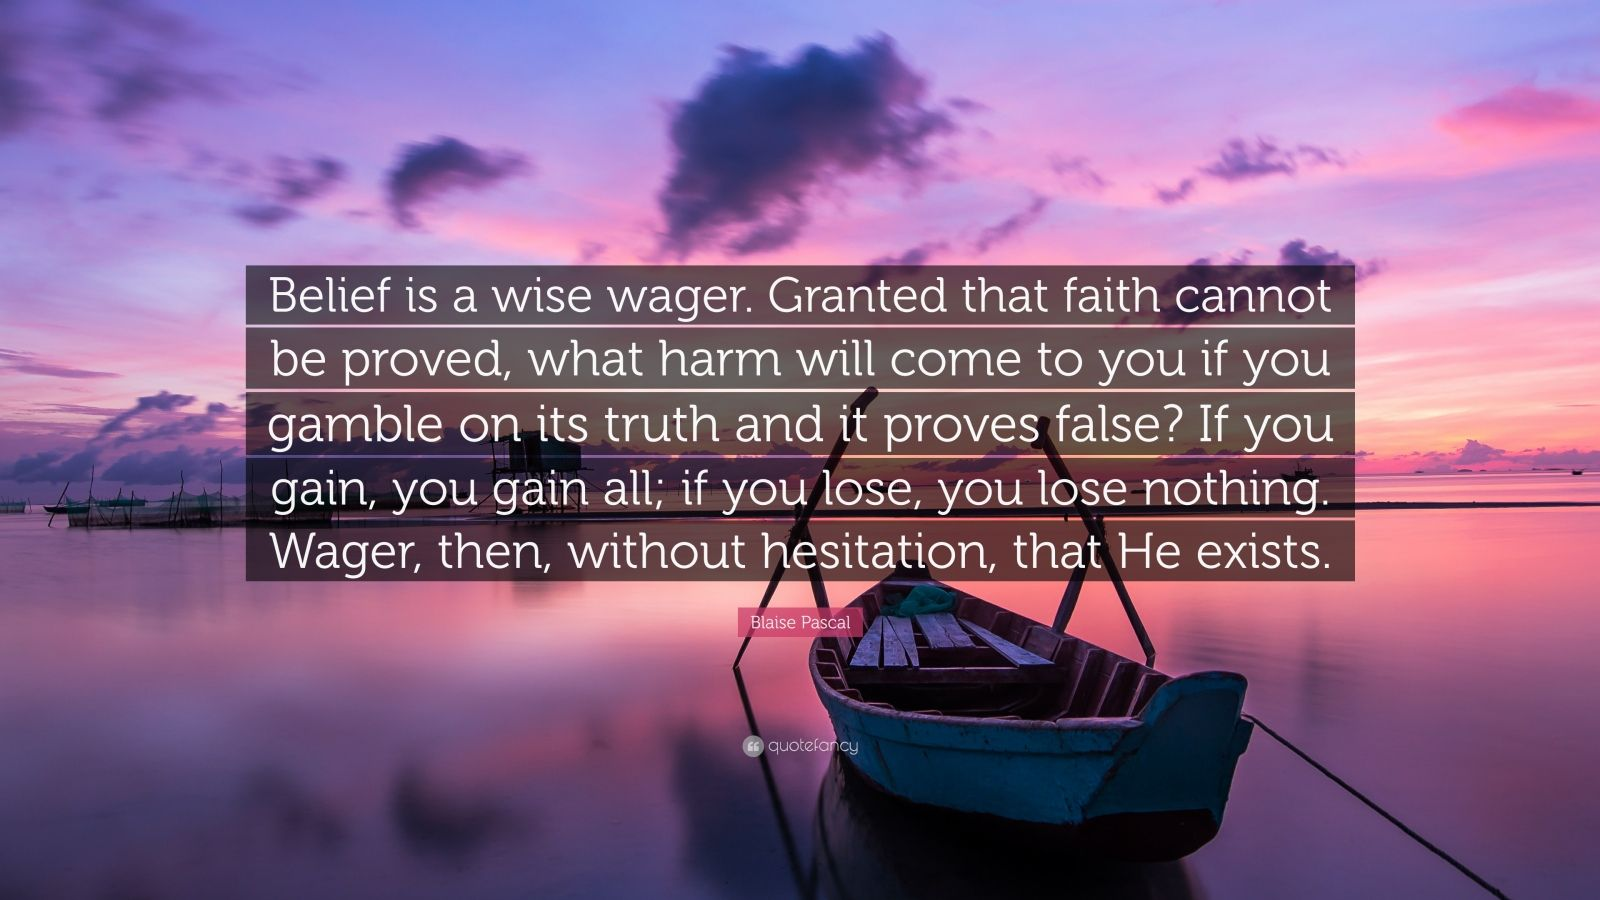 "Blaise Pascal Quote: ""Belief is a wise wager. Granted that faith cannot be proved, what harm will come to you if you gamble on its truth and it proves false? If you gain, you gain all; if you lose, you lose nothing. Wager, then, without hesitation, that He exists."""